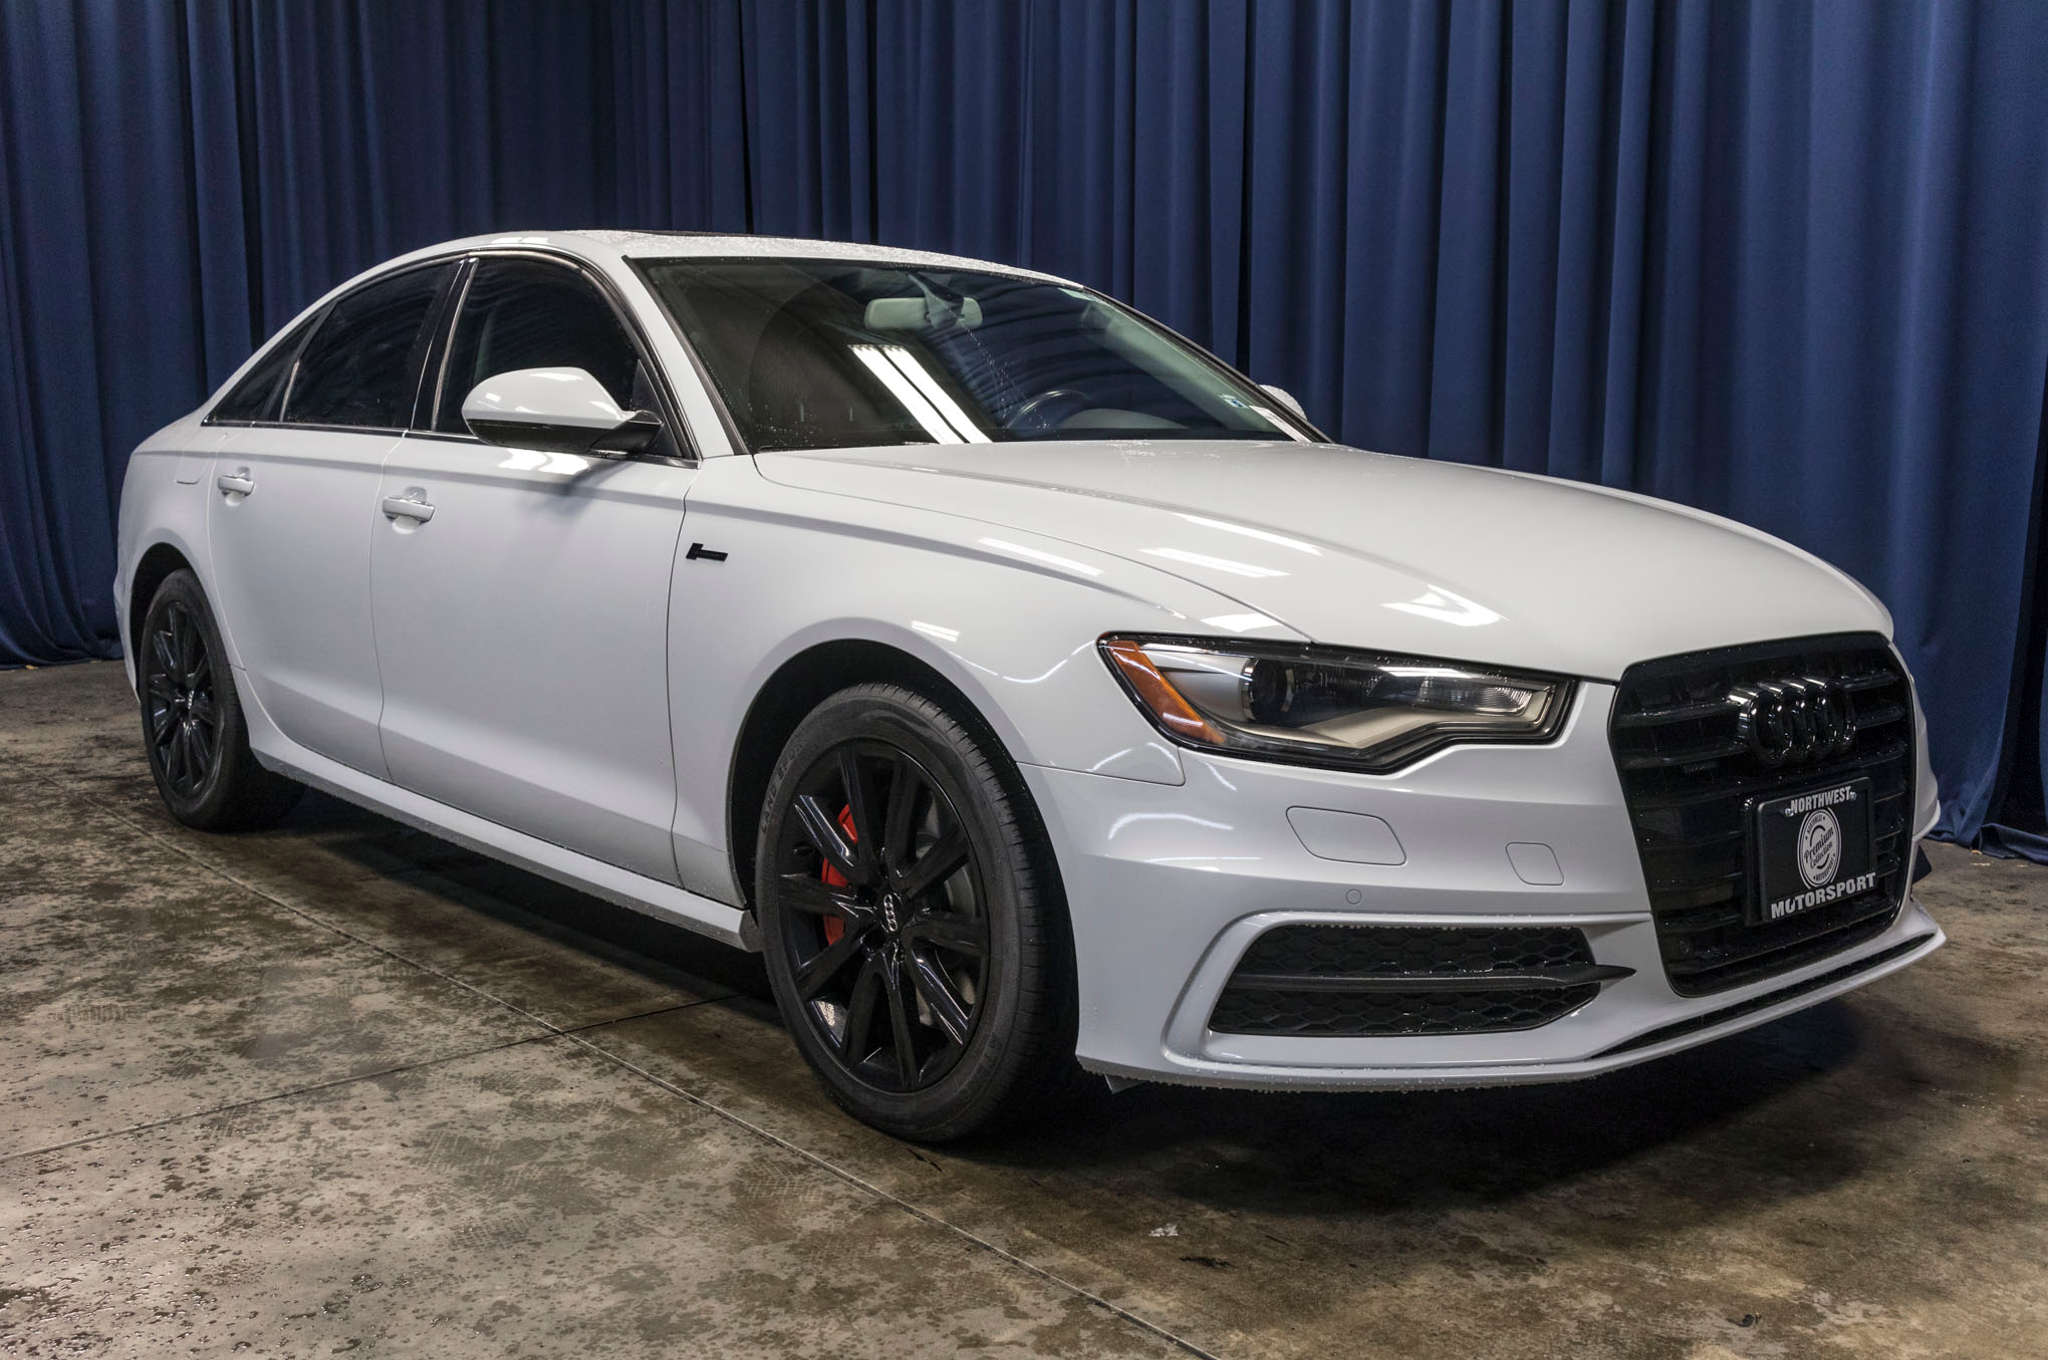 gallery audi sale a mymotor buy malaysia in used for view